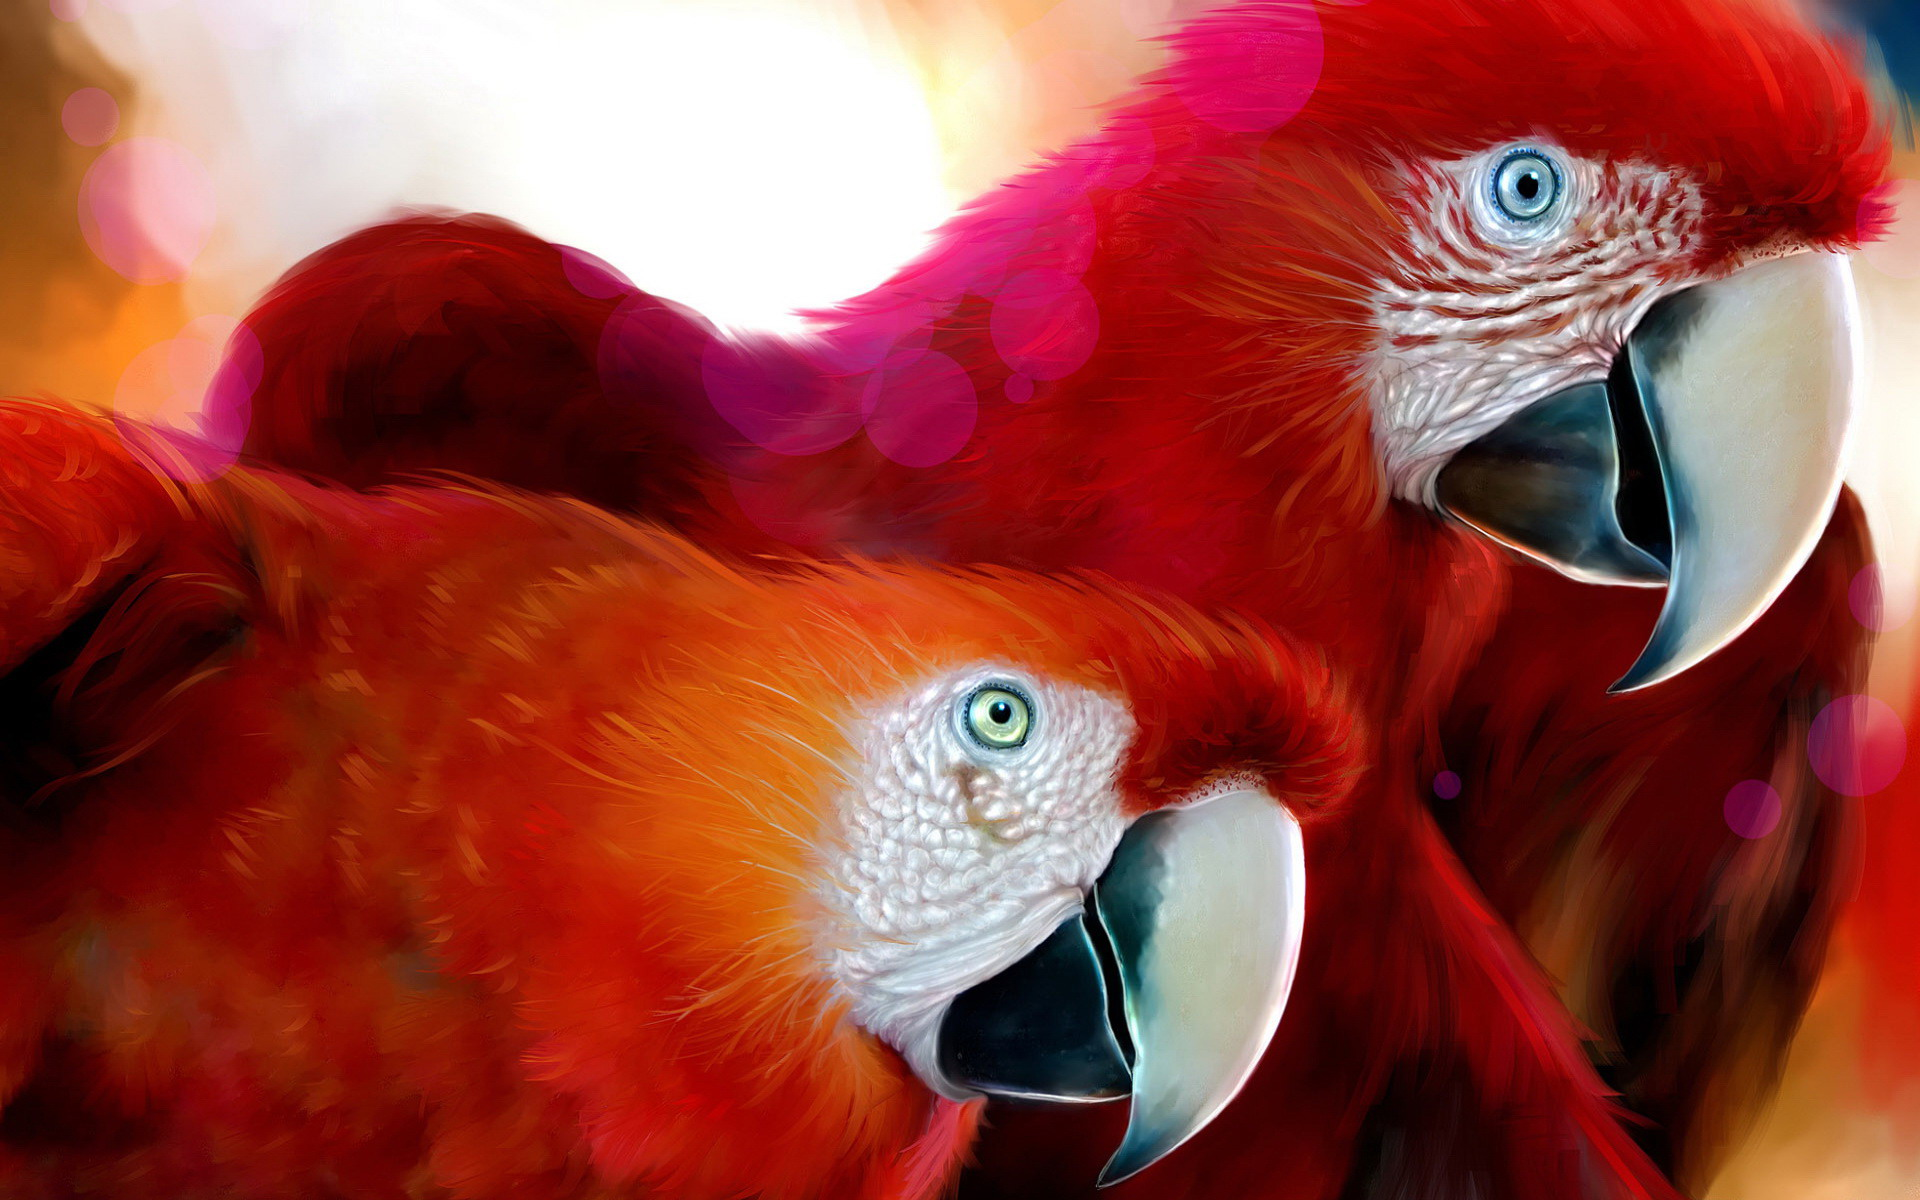 Two Red Parrot [Perroquet]